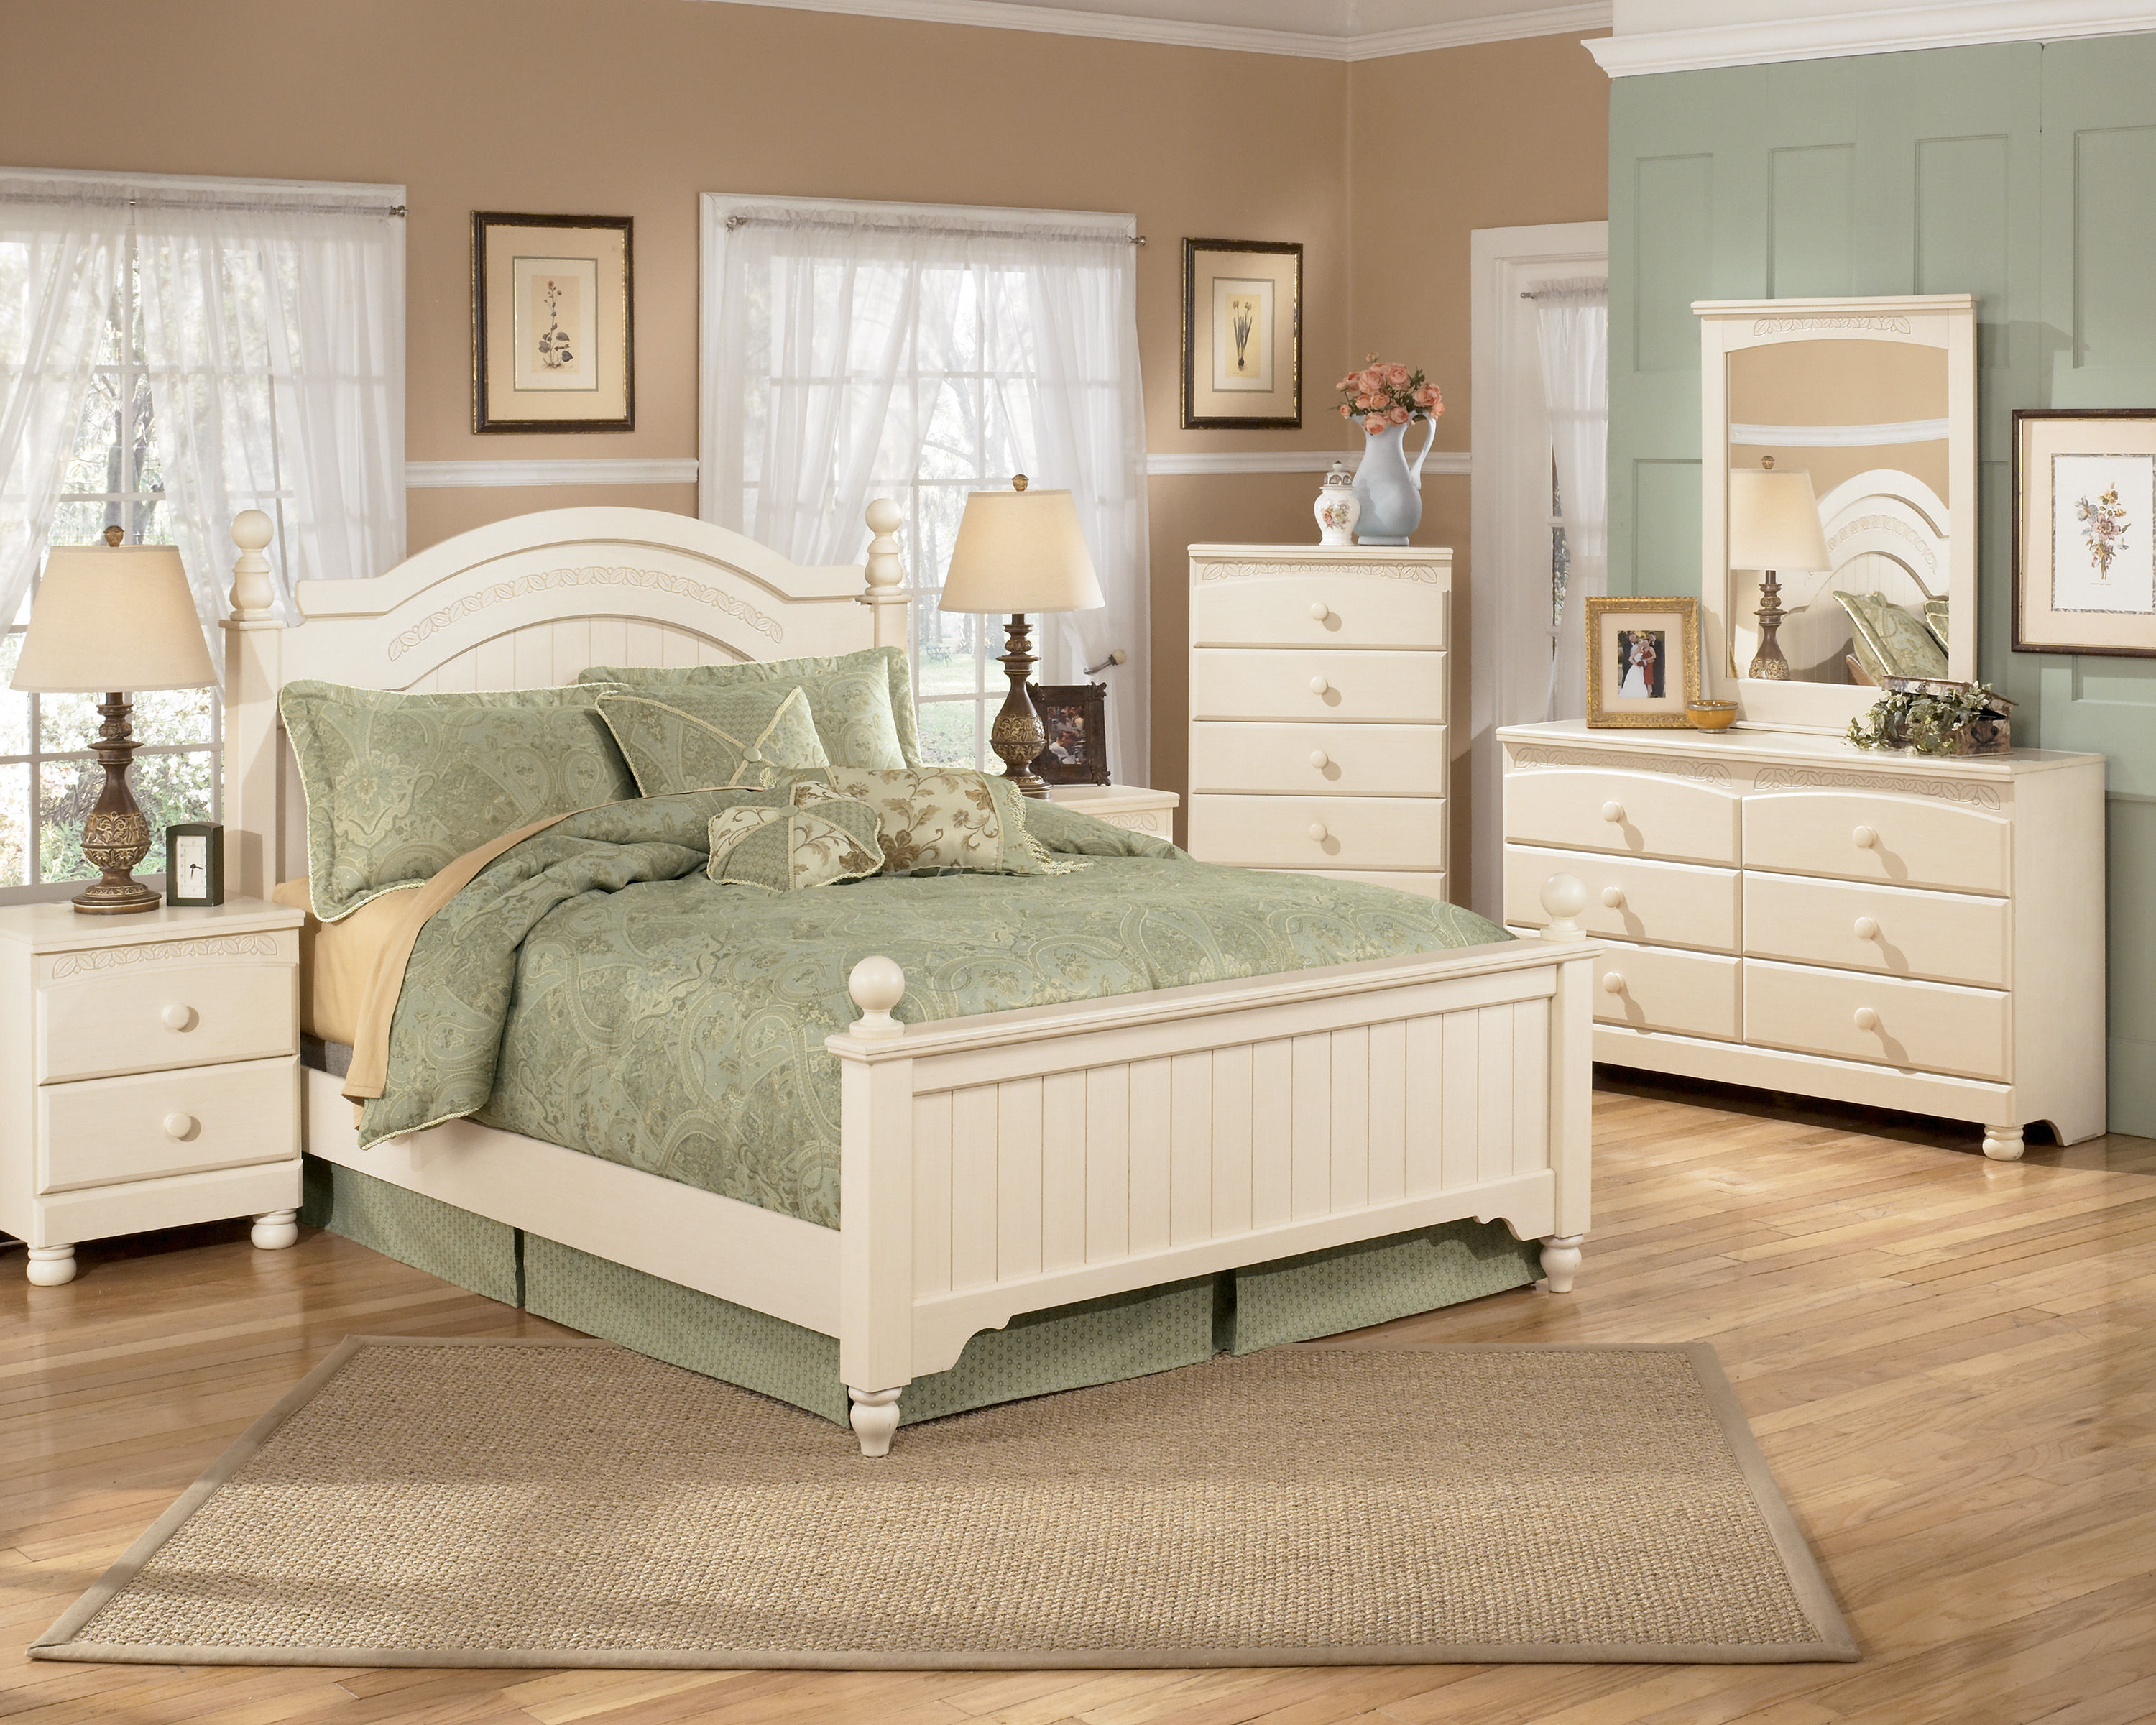 Ashley Furniture Cottage Retreat 2pc Bedroom Set with Queen ...